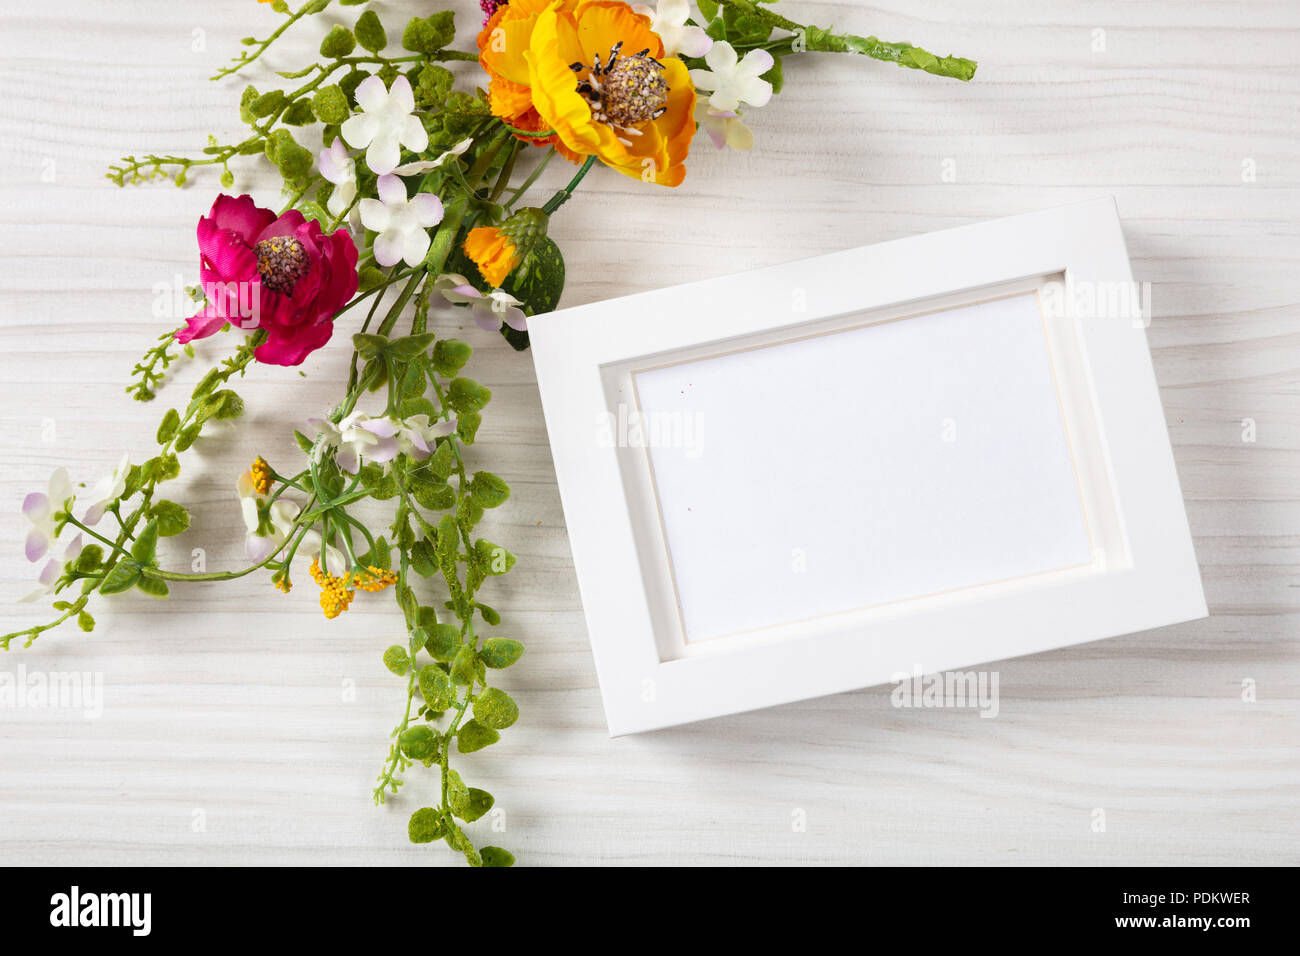 20 Florist Message Cards White Flowers Message Cards Wedding Birthday Blank